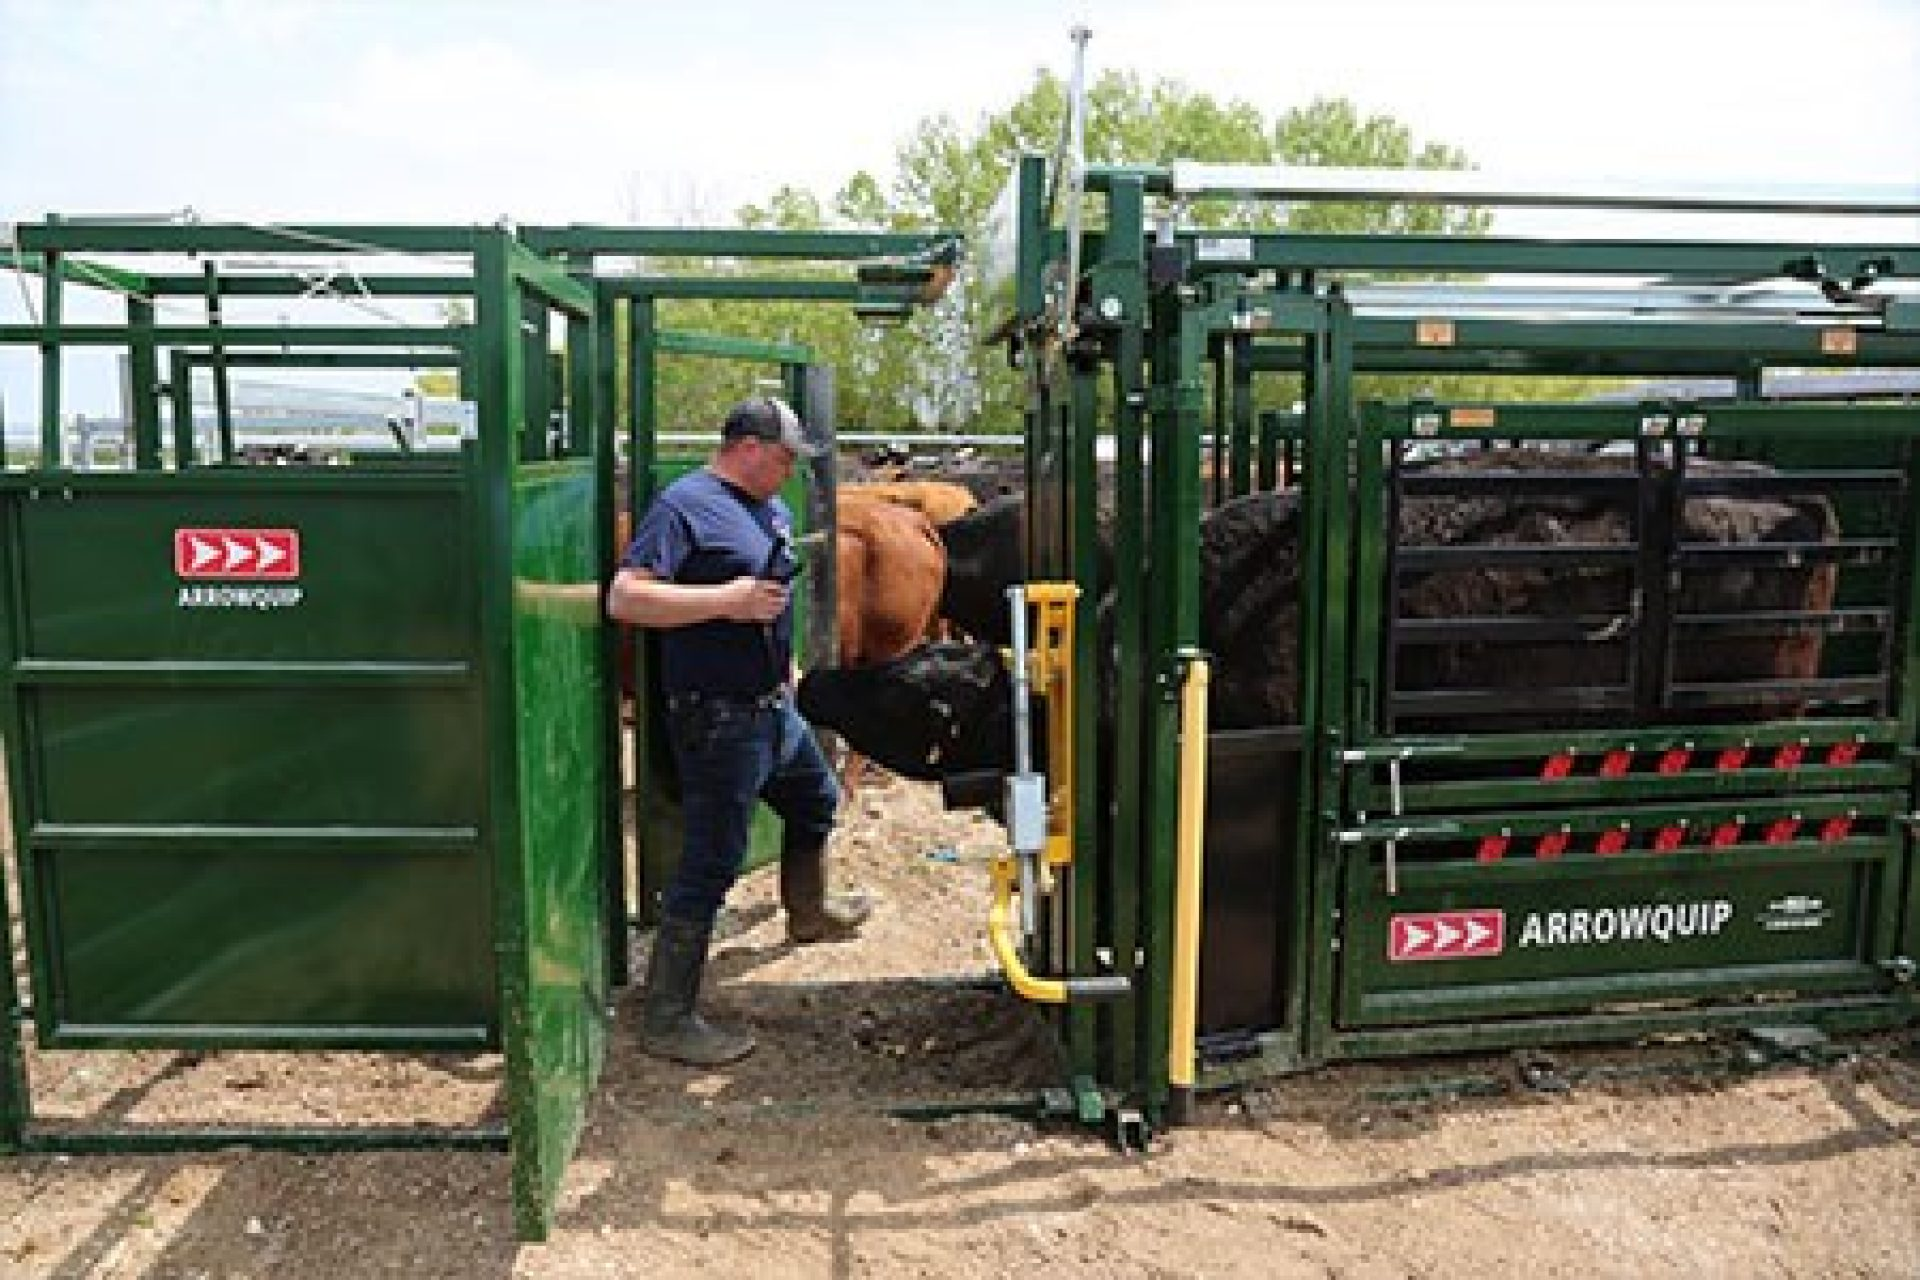 Man eartagging a cow in a squeeze chute